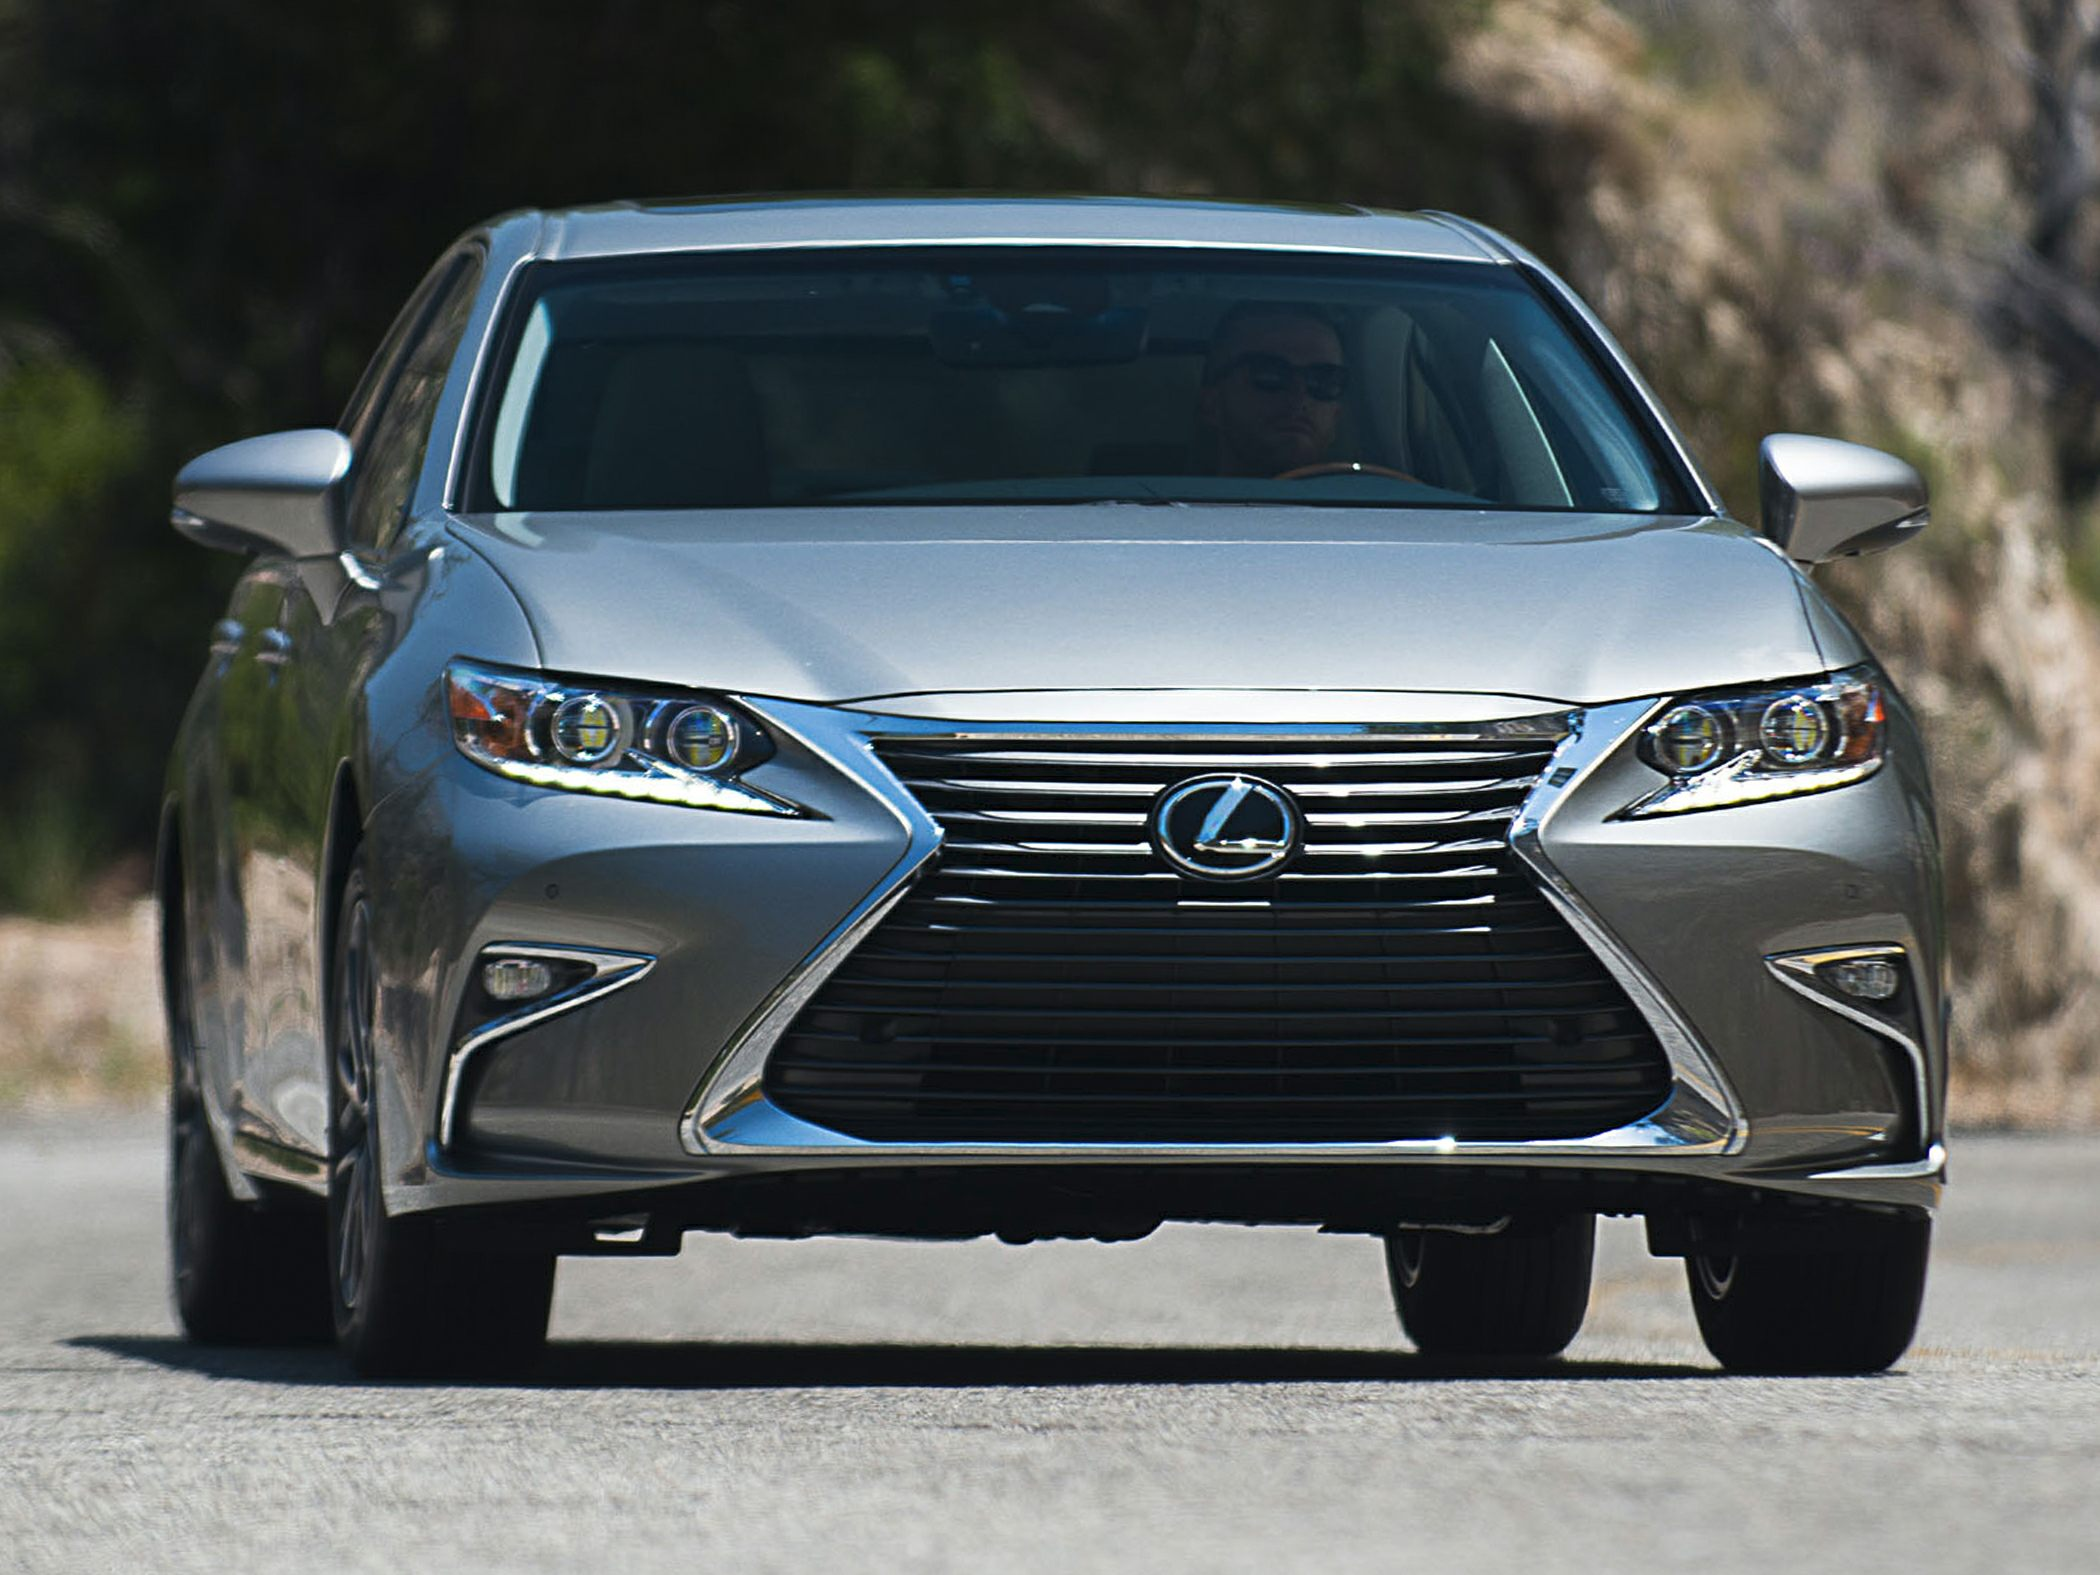 Led headlights are now standard and part of a redesigned fascia that gives the es 350 a wider appearance new exterior colors and interior finishes are now